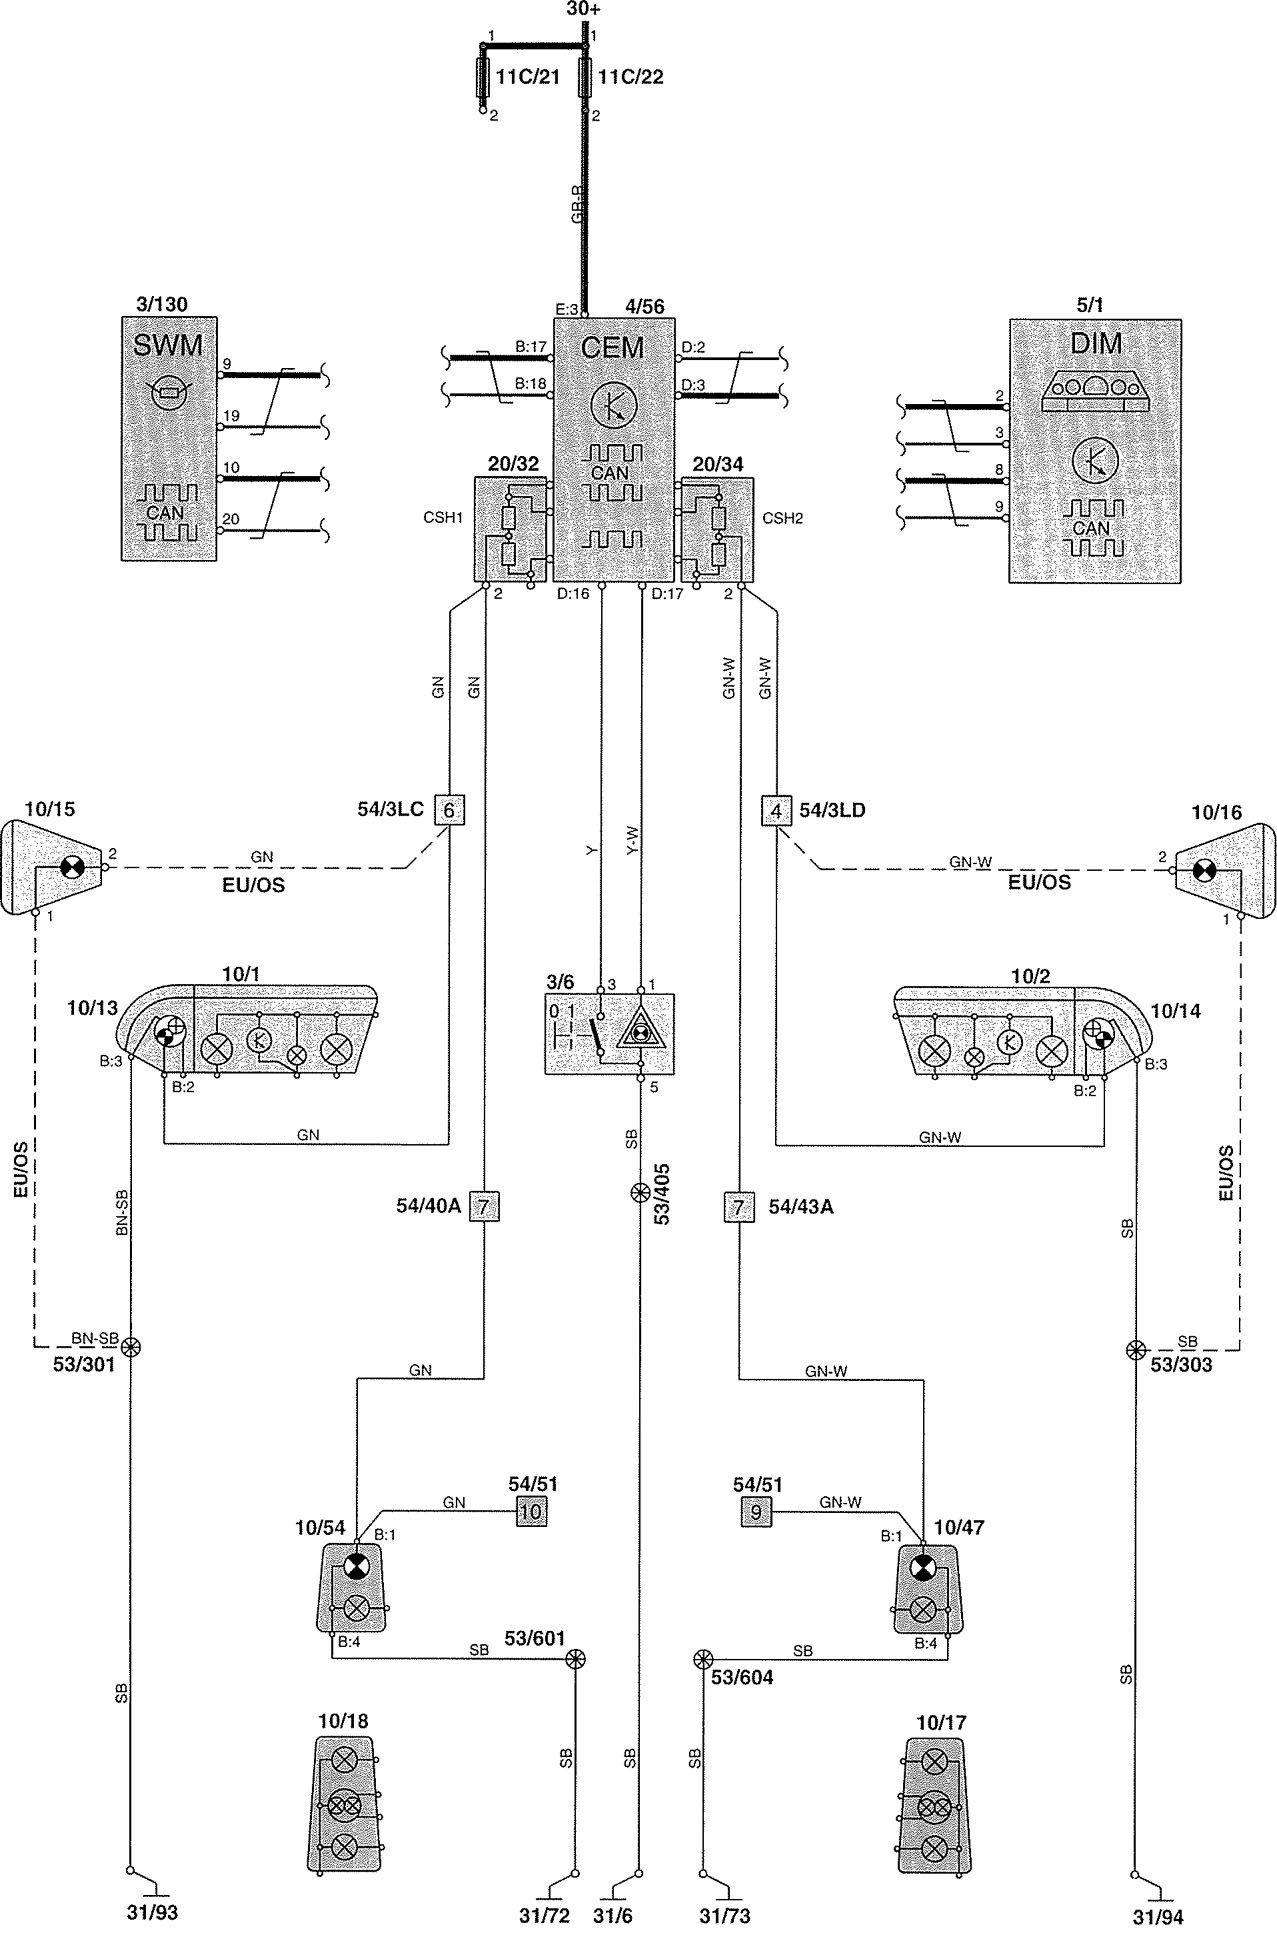 Volvo V70 Electrical Diagram Daily Update Wiring 2002 Diagrams Indicator Lamp